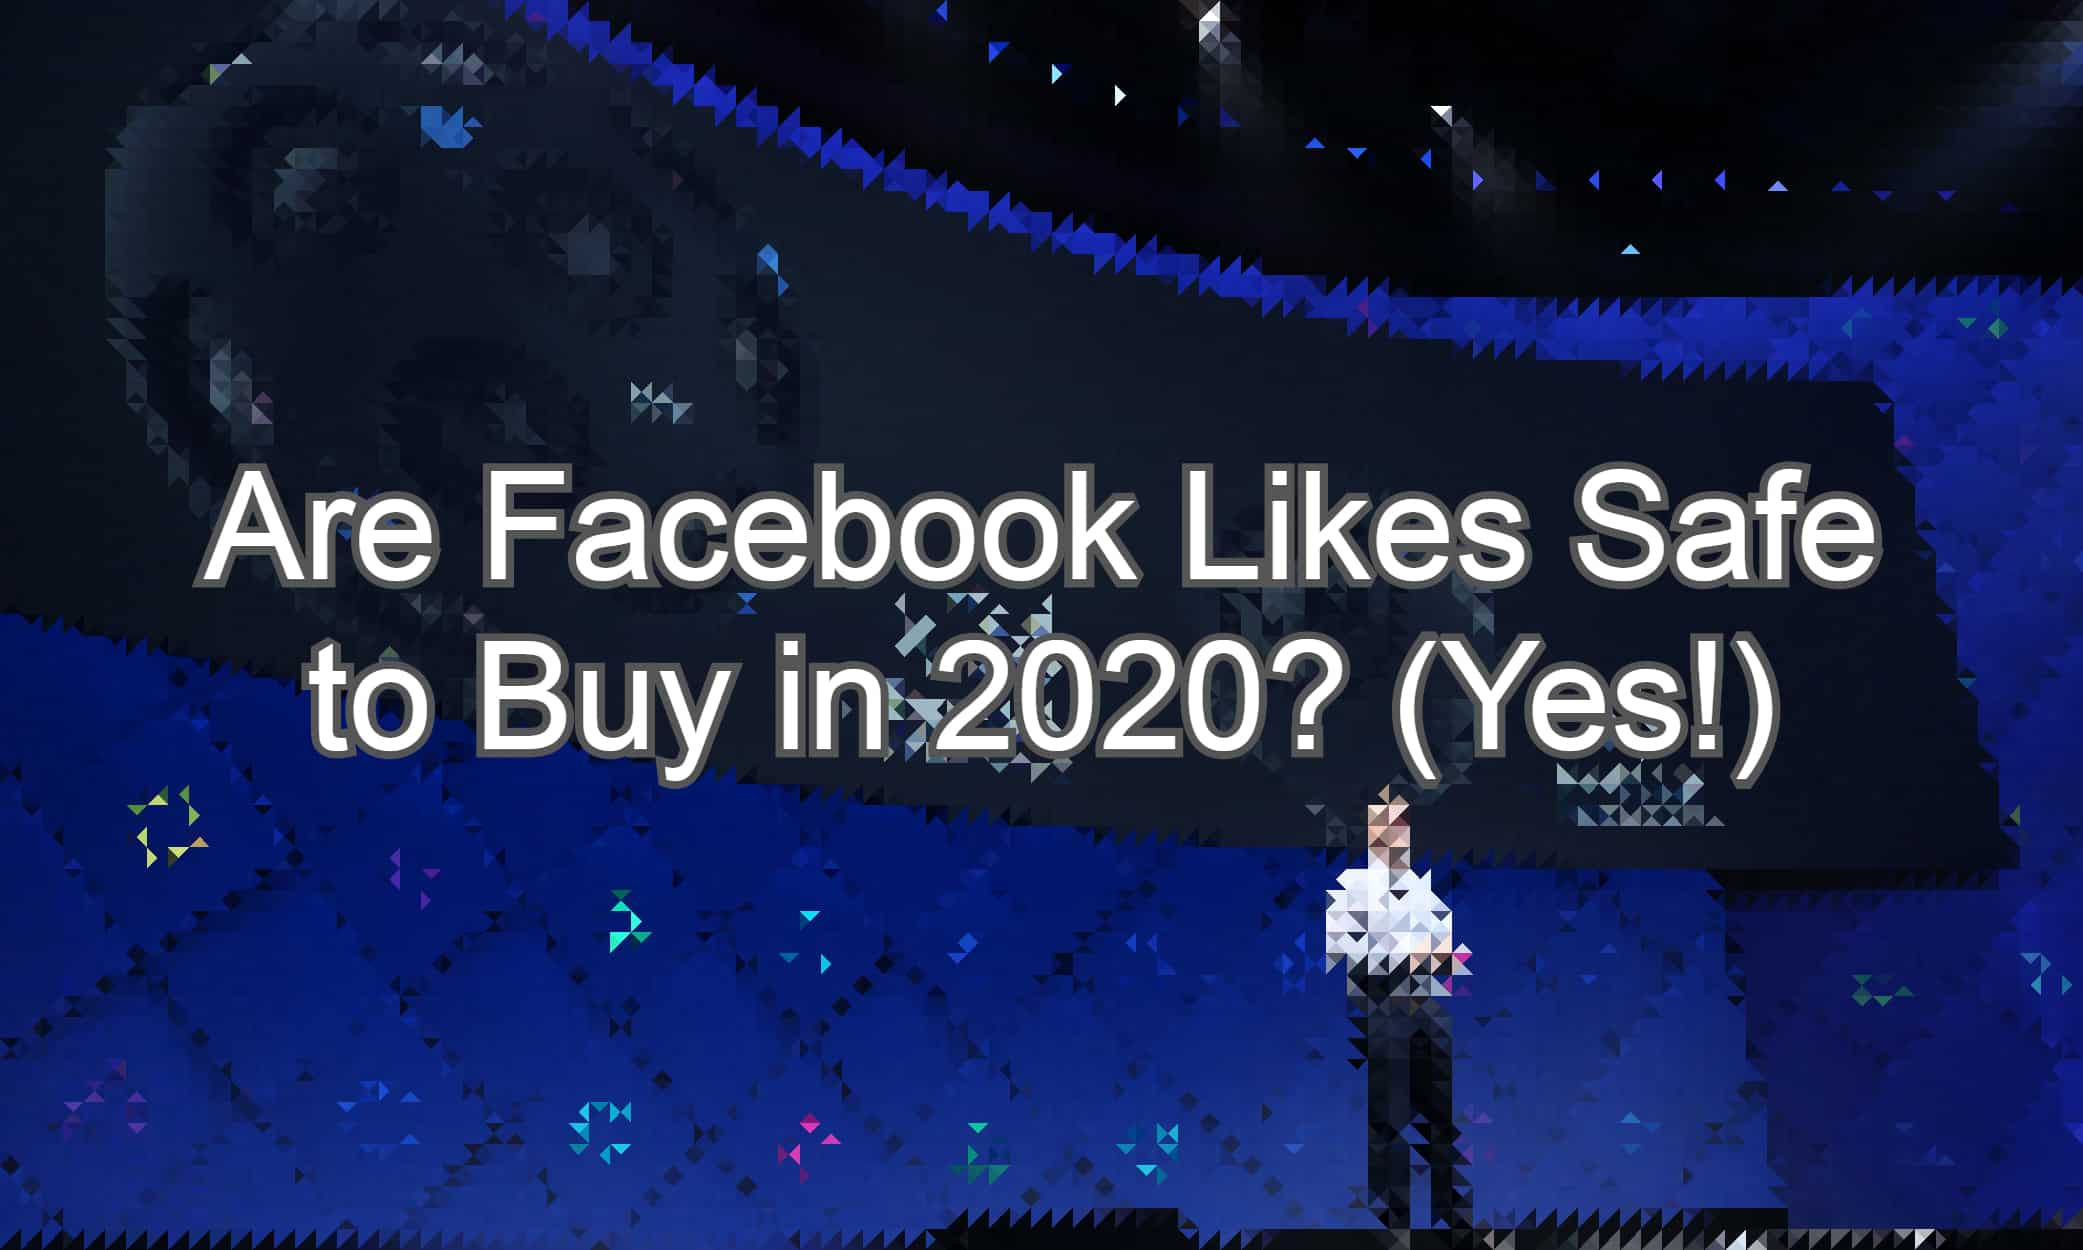 Are Facebook Likes Safe to Buy in 2020? Yes!